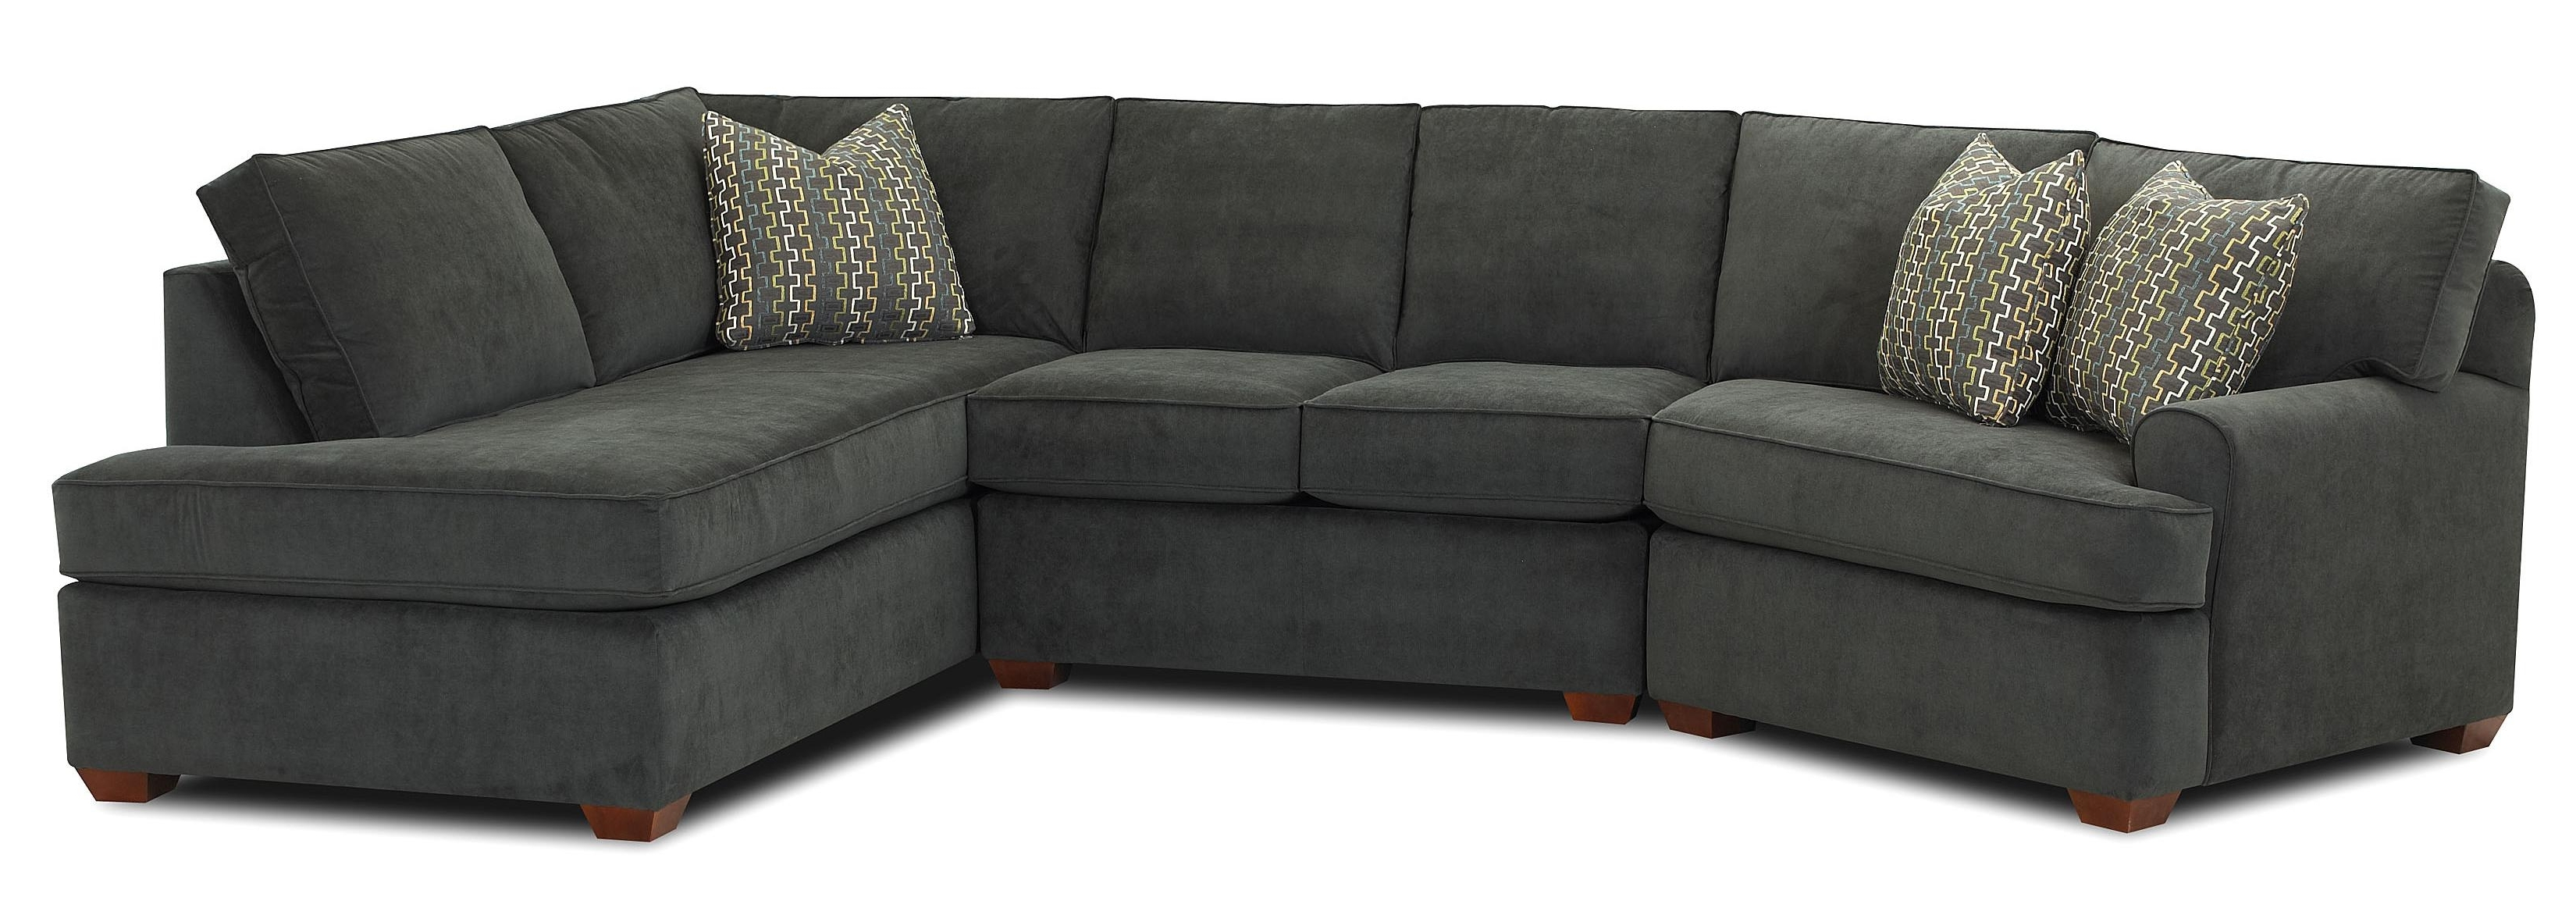 Widely Used Leather Loveseat With Chaise 72 Inch Sofa Sectional Sleeper Sofa Intended For Leather Couches With Chaise Lounge (View 8 of 15)